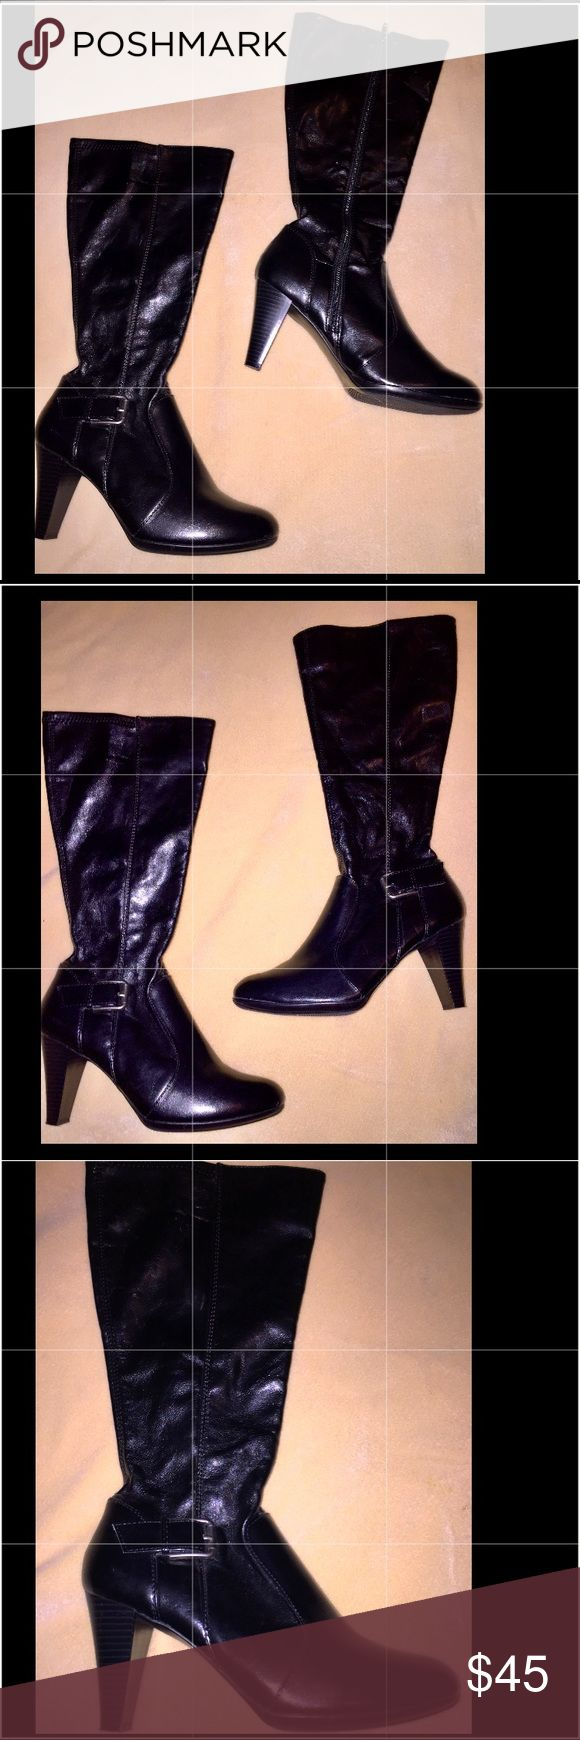 """❤️BEAUTIFUL Black Boots Size 9 by Madeline Stuart """"Spencer""""  Boots With Silver Buckle Detail Madeline Stuart Shoes Heeled Boots"""